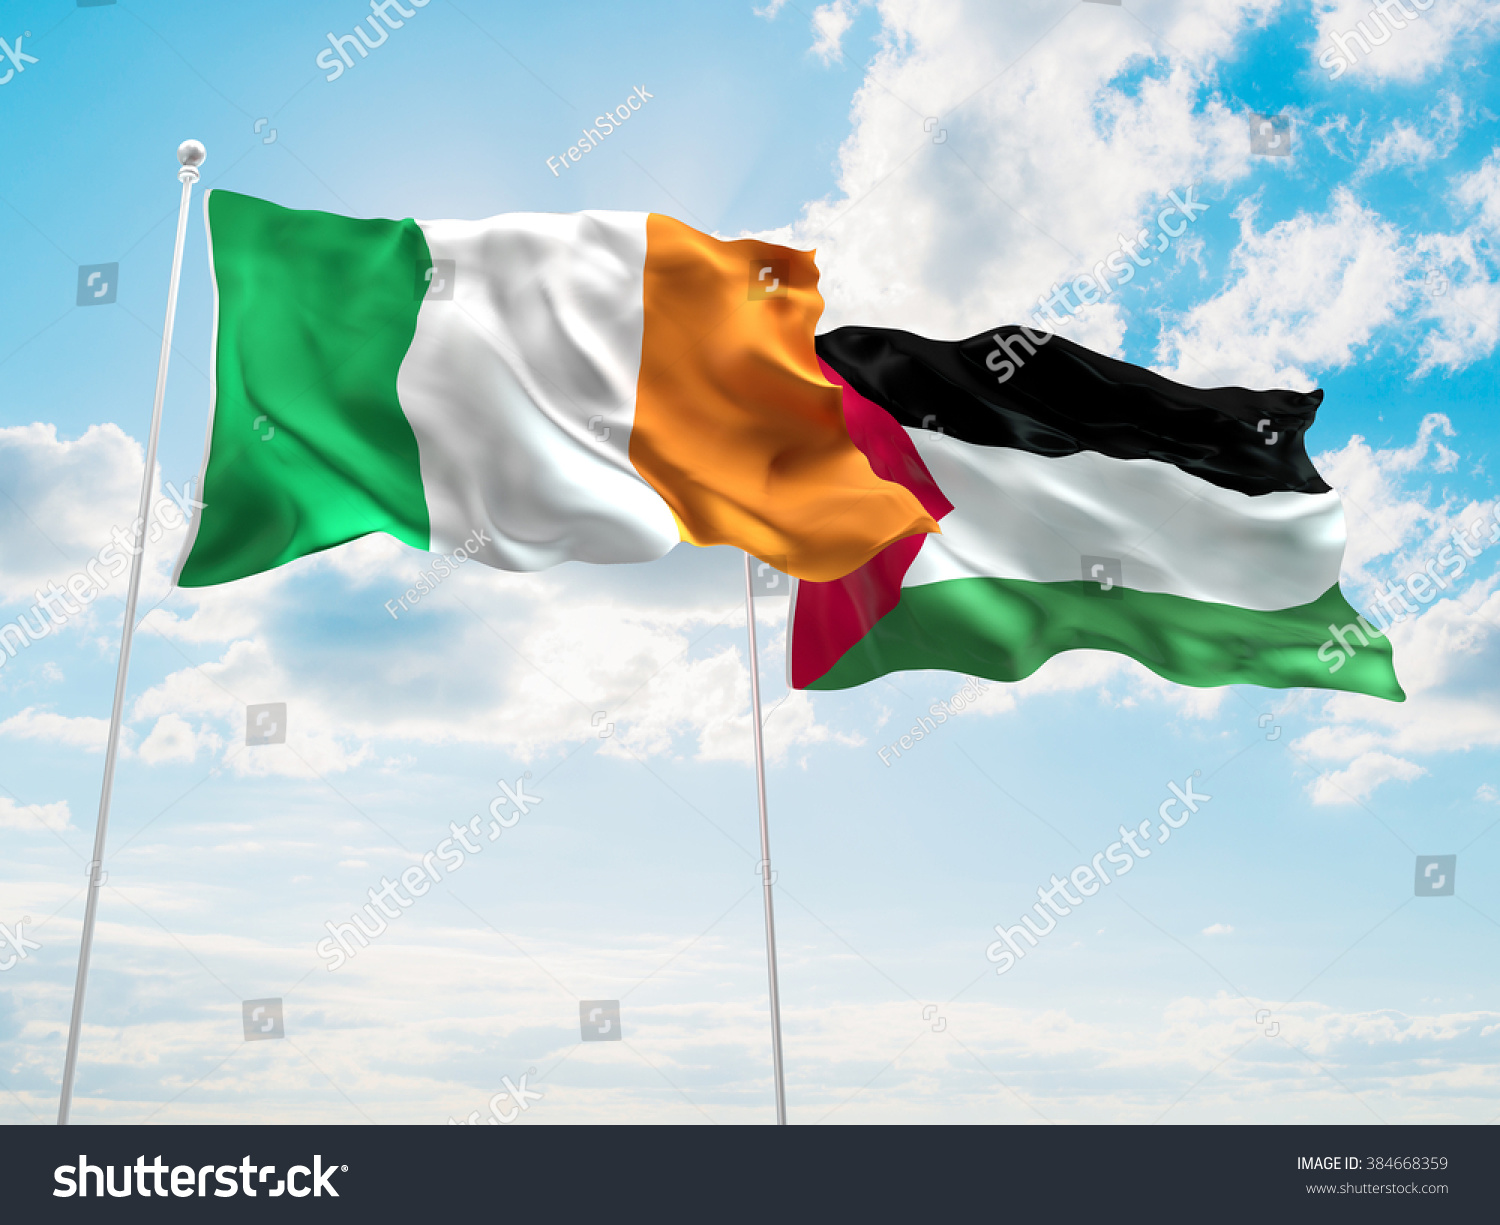 stock-photo-ireland-palestine-flags-are-